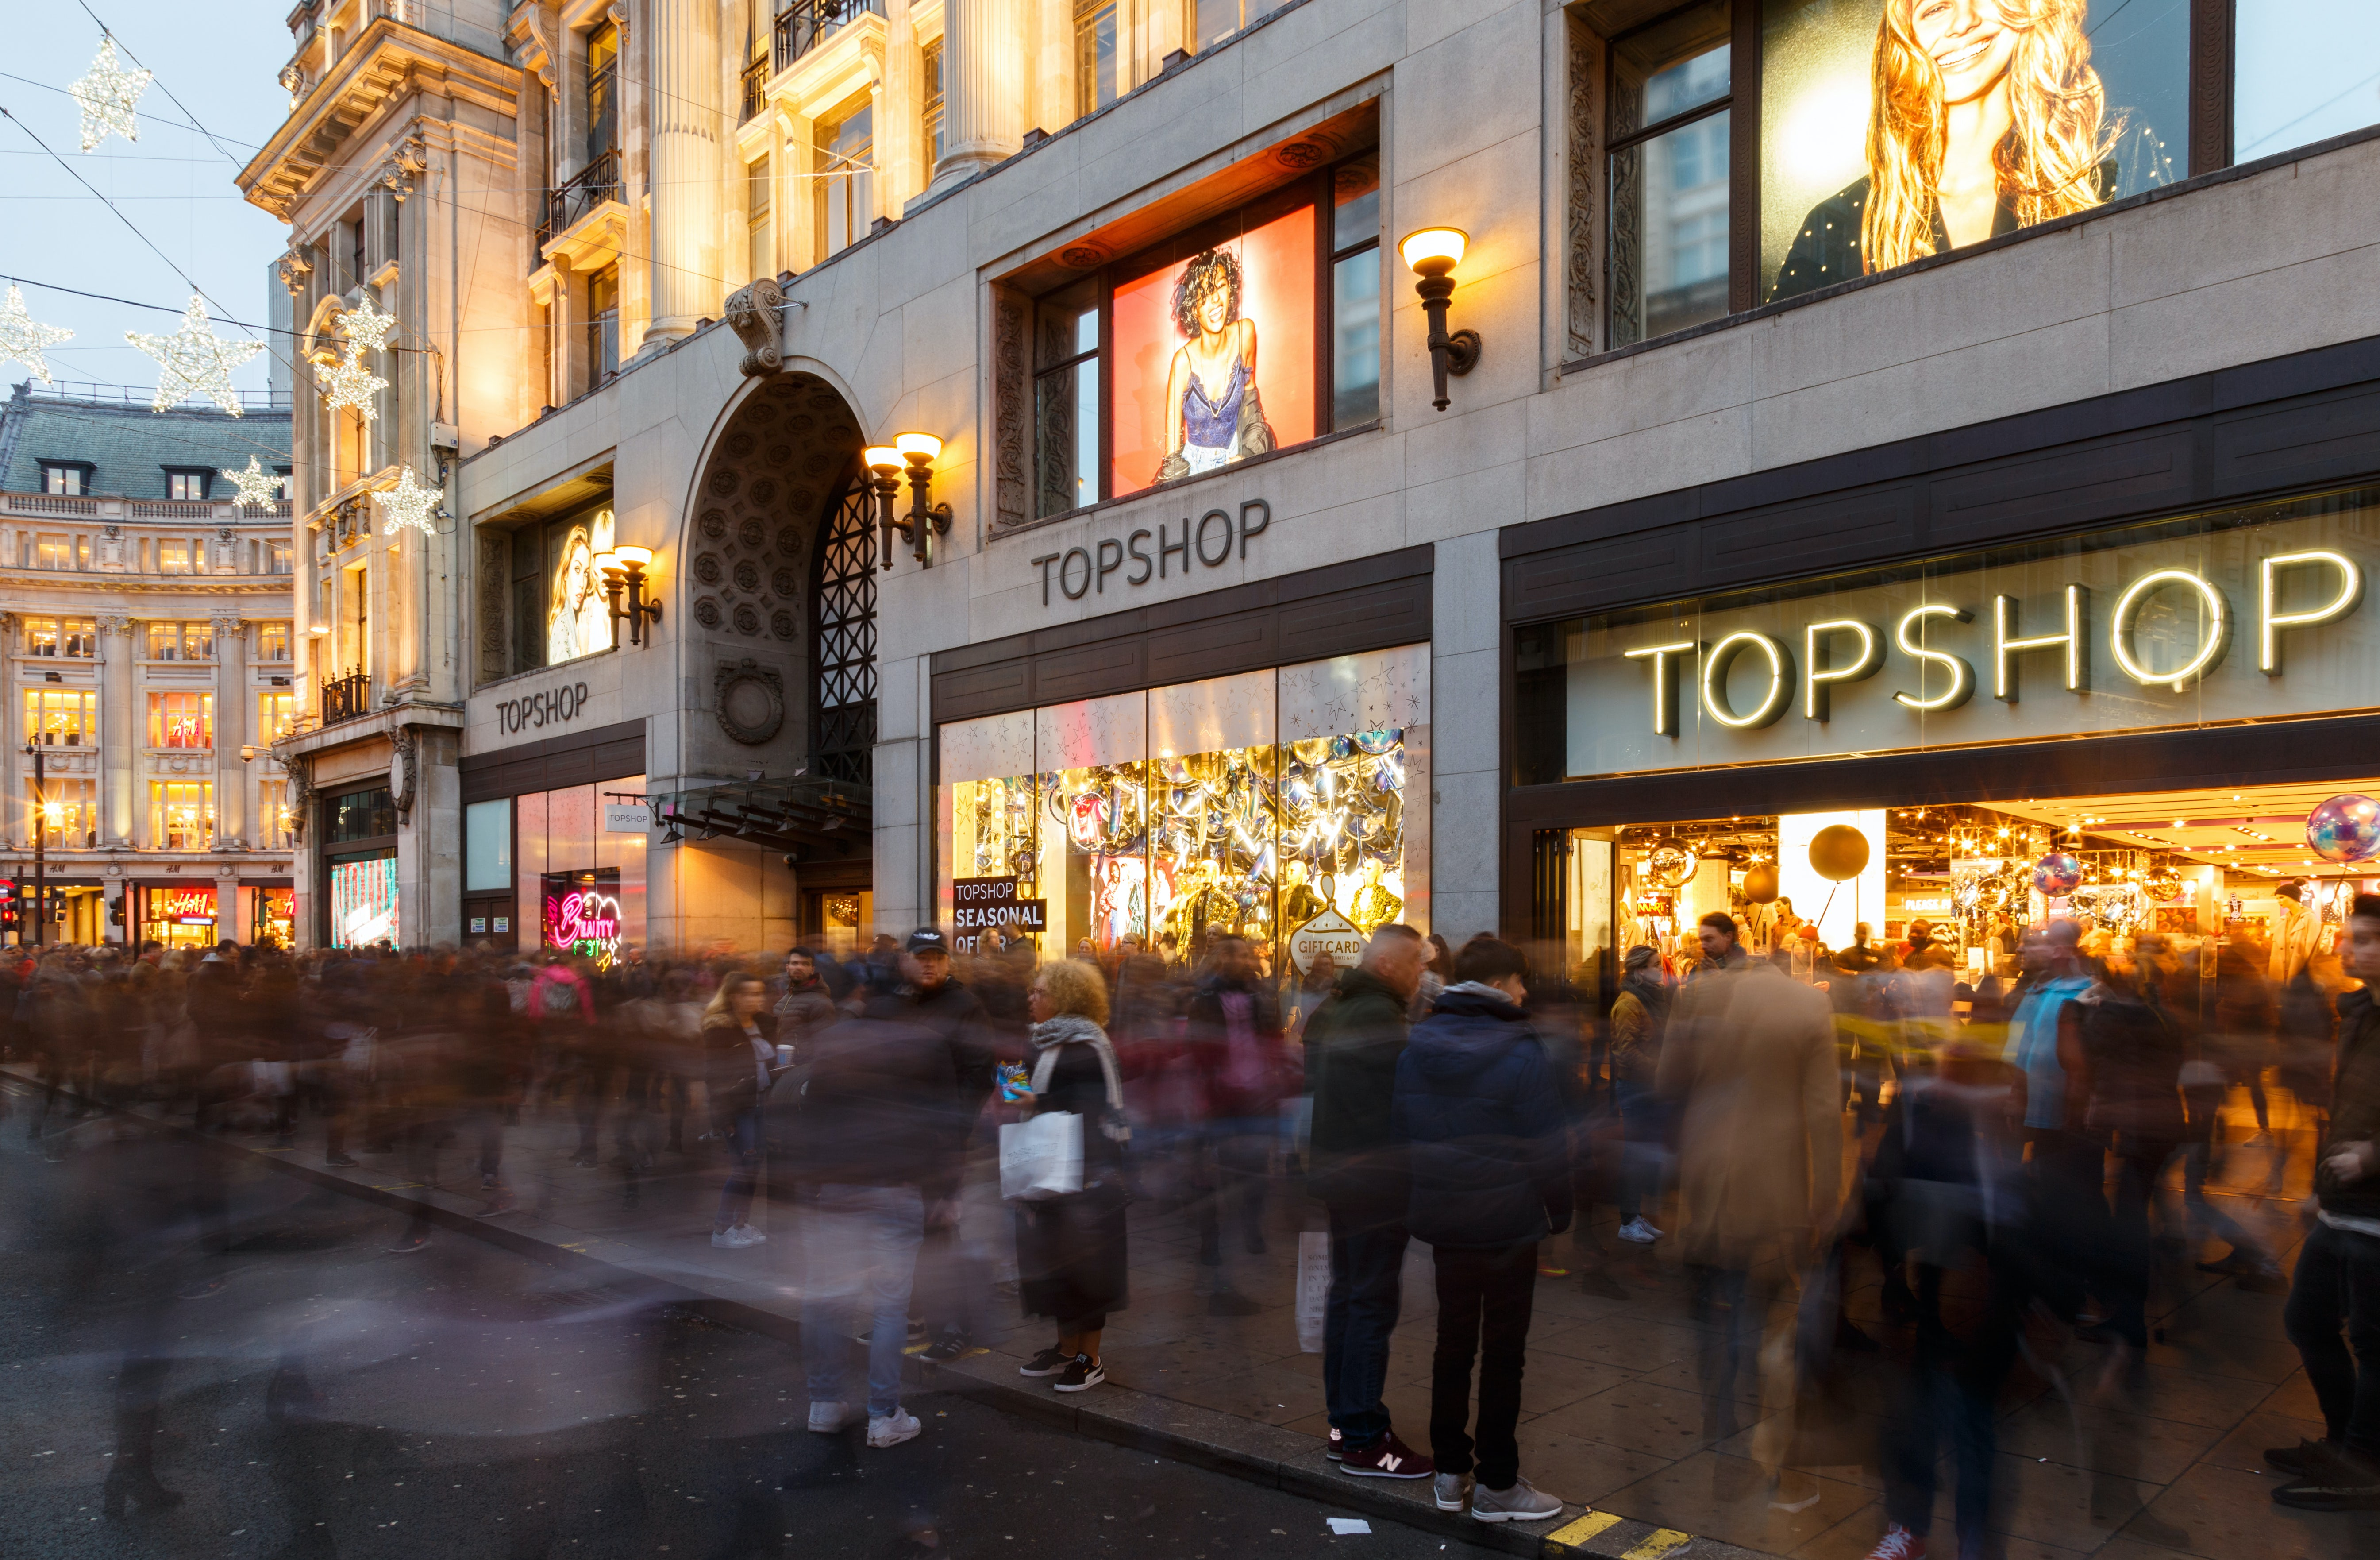 The Topshop flagship in London | Source: Shutterstock